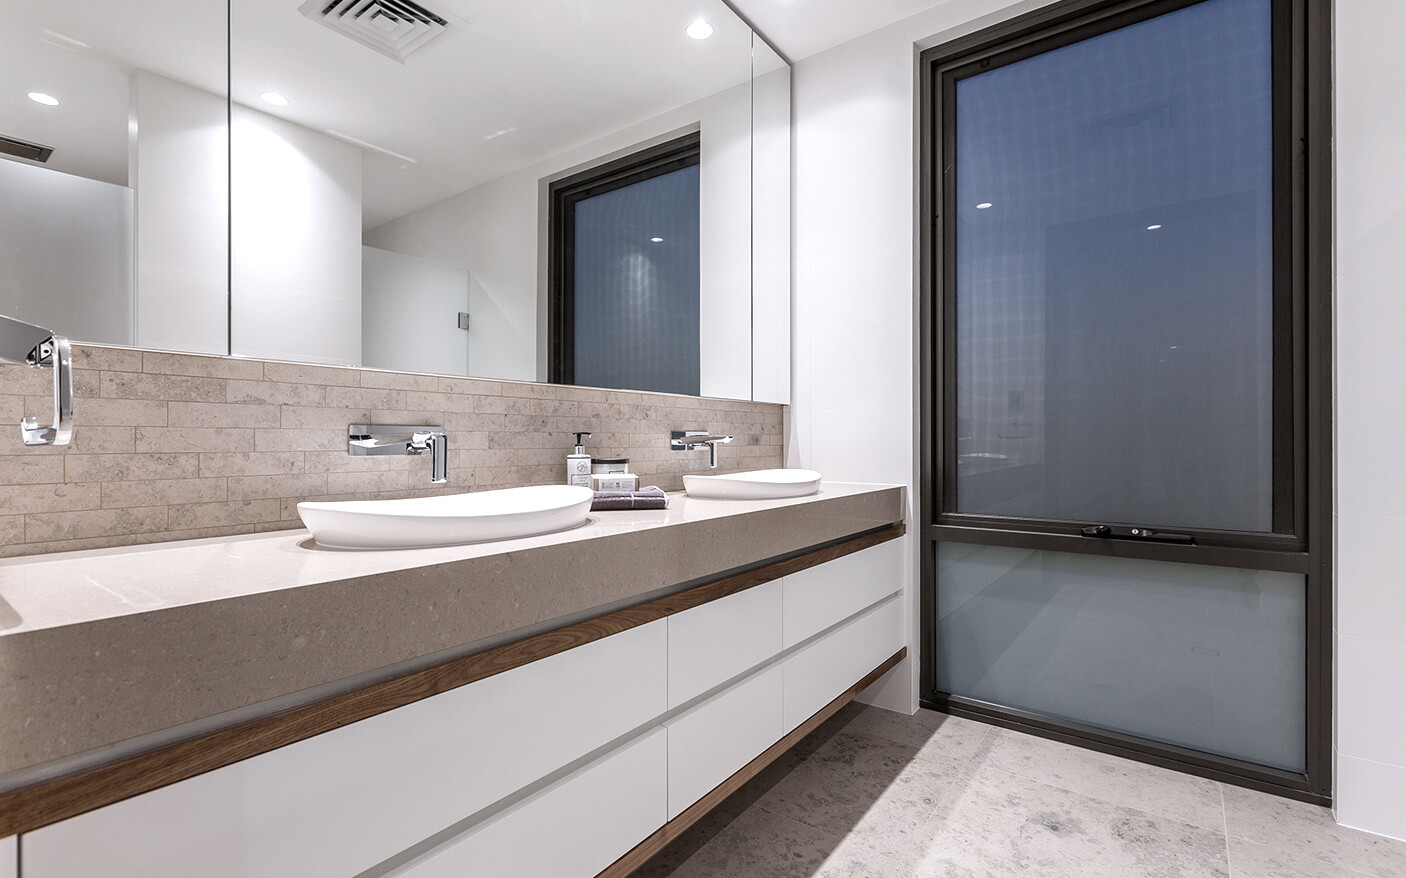 South perth residence giorgi for Bathroom decor osborne park